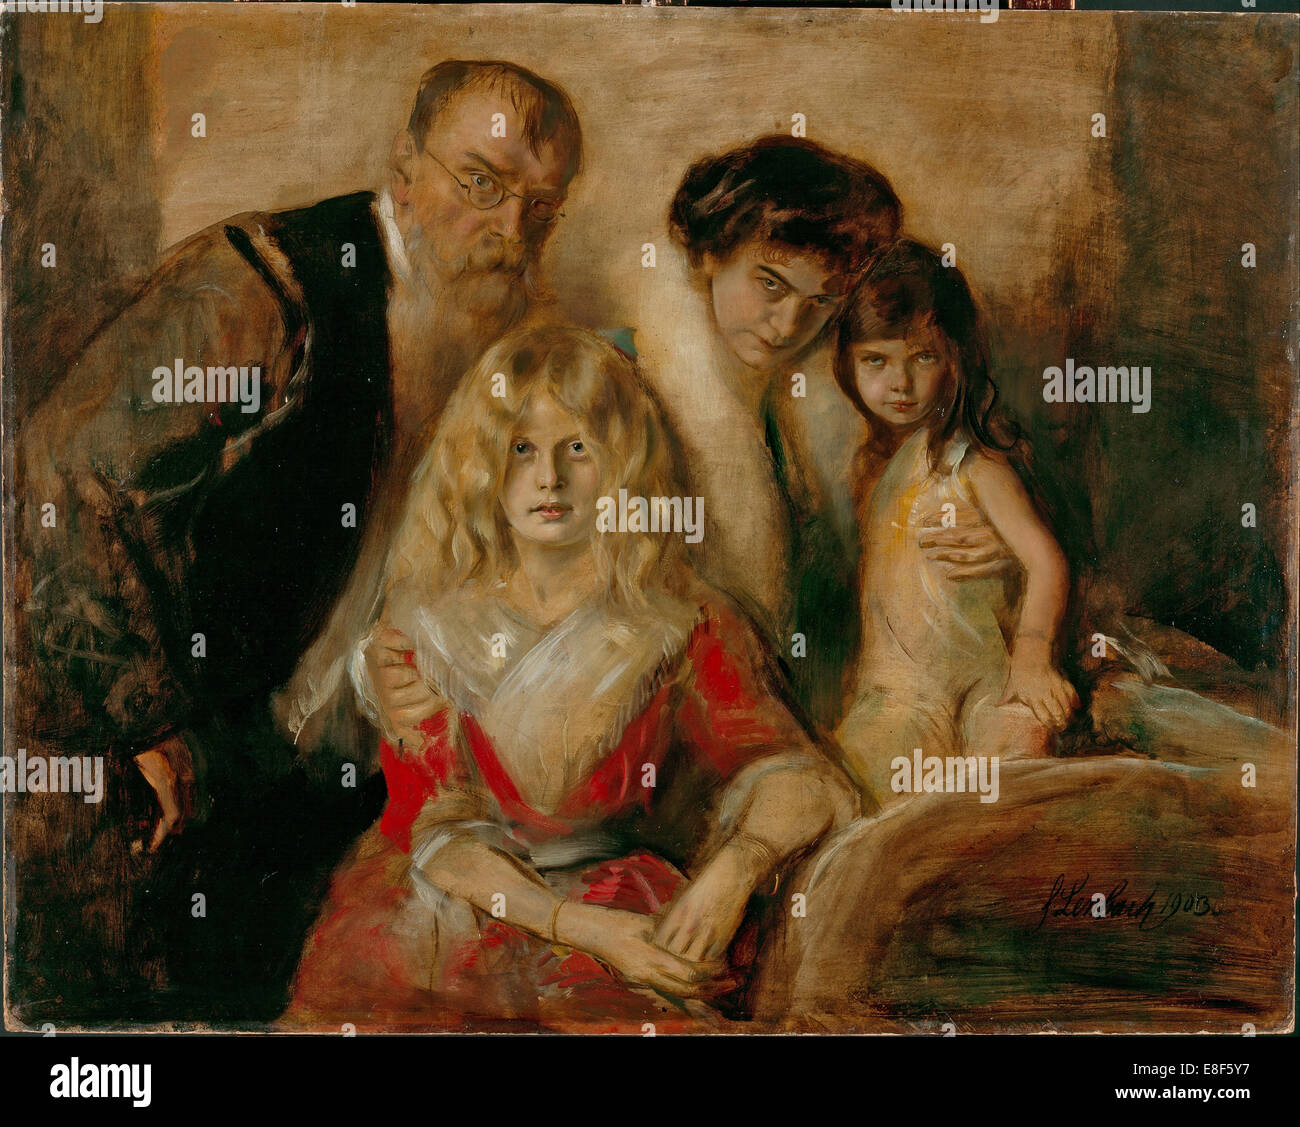 The Artist with his Wife and Children. Artist: Lenbach, Franz, von (1836-1904) - Stock Image